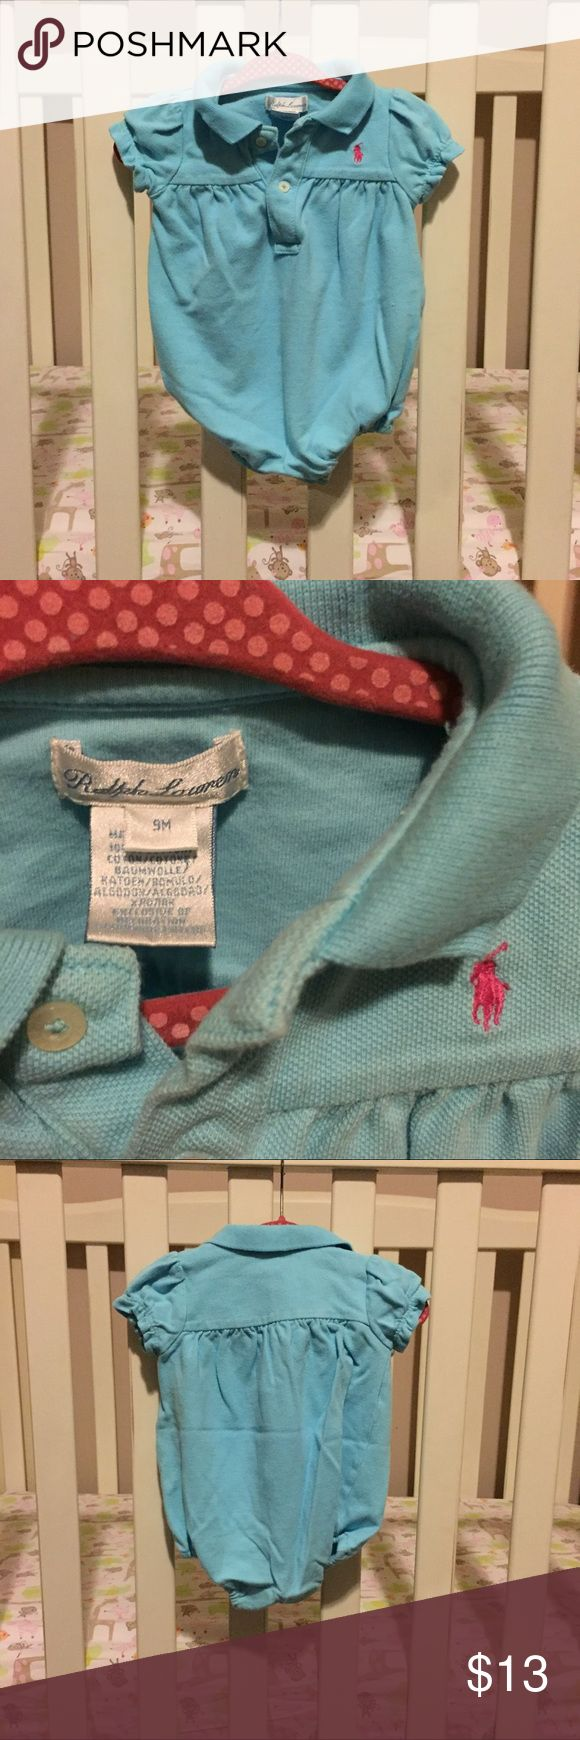 👧🏻 Ralph Lauren Baby Blue Polo Shirt Onsie Ralph Lauren Baby Blue Polo Shirt Onsie, EUC, 9 Months. Price is fairly FIRM because of fees but always welcome bundles for savings 😊 Ralph Lauren One Pieces Bodysuits